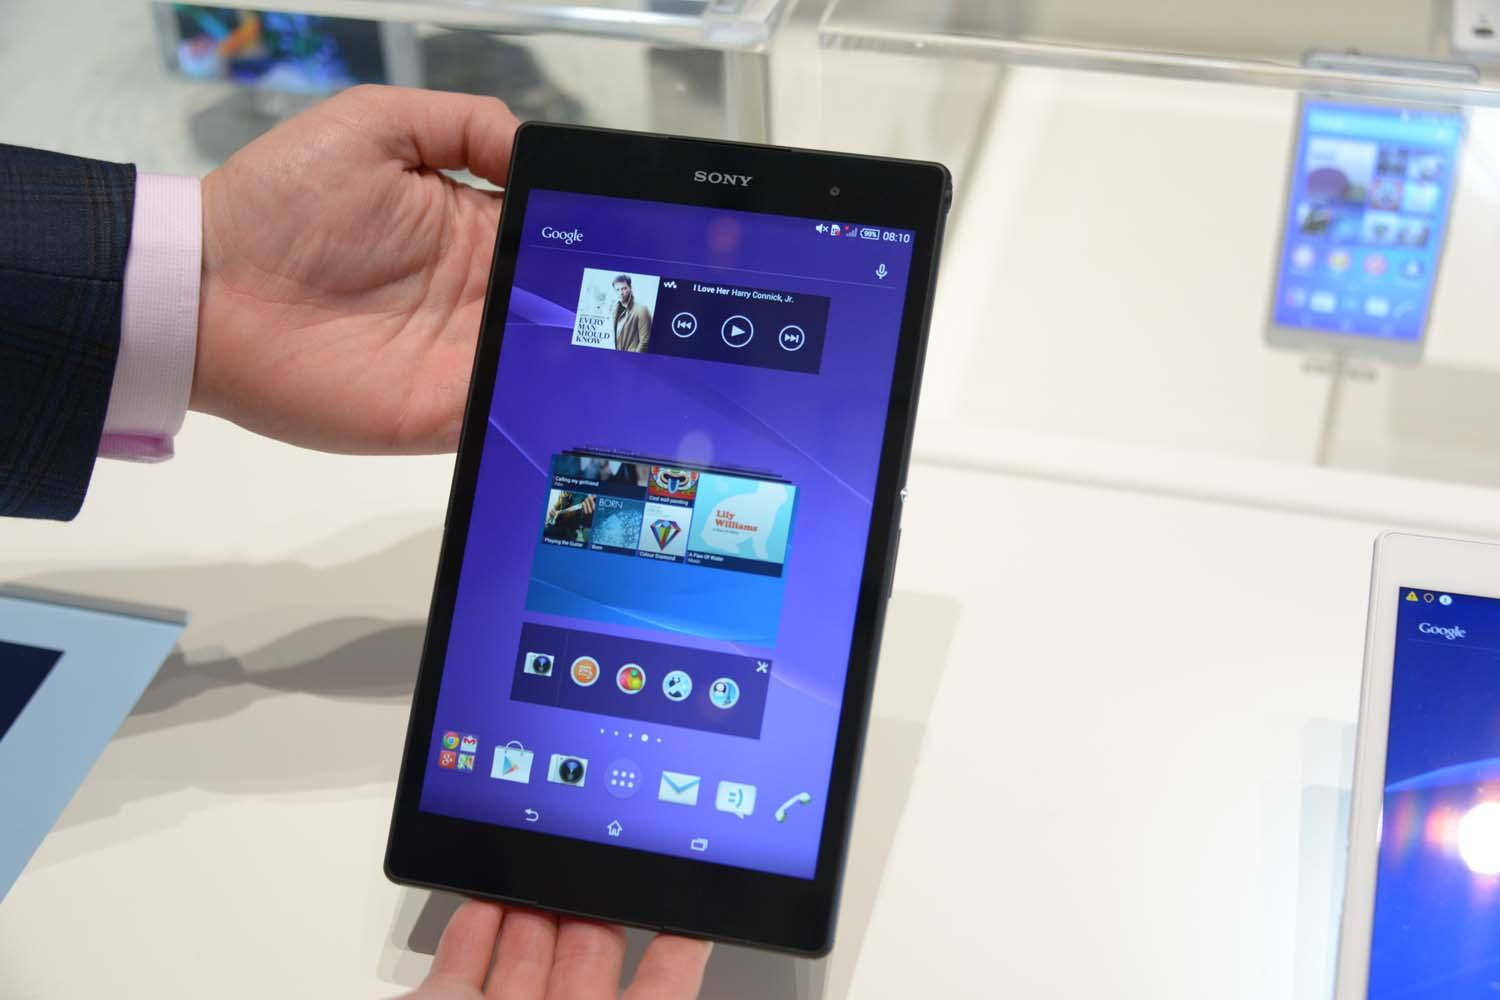 Sony Xperia Z4 Tablet Ultra, First Future Professional Sony Tablet Details Leaked